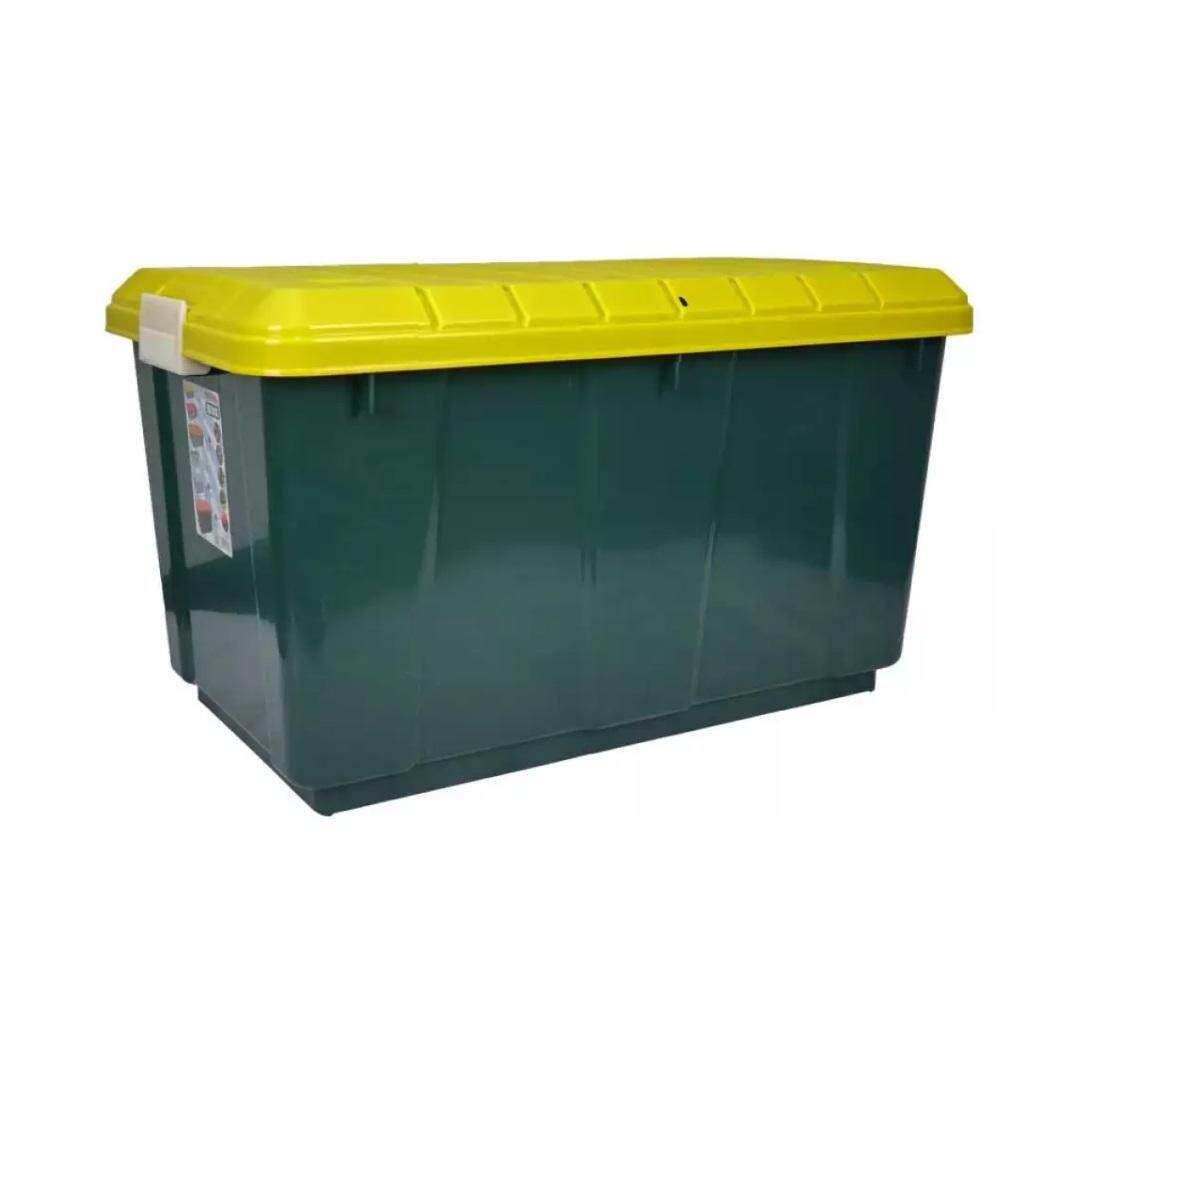 (OW) TOYOGO 87 Series 06 Single-Lid Side-Mount RV Storage Box with wheels - 98 Lit